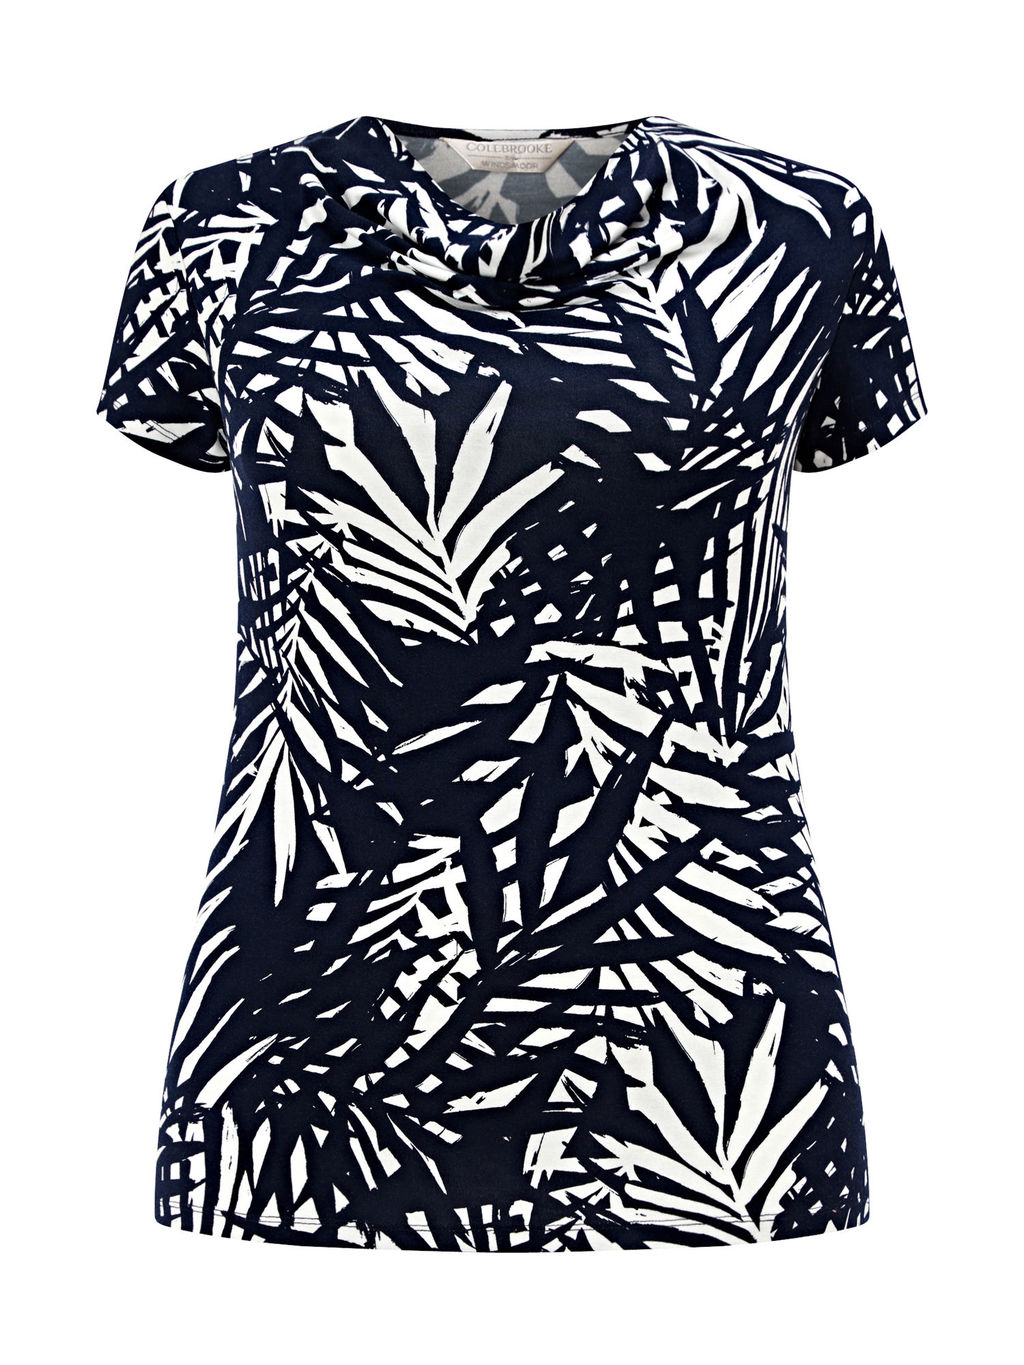 Palm Leaf Cowl Neck Top, Navy/White - secondary colour: white; predominant colour: black; occasions: casual, creative work; length: standard; style: top; fit: body skimming; neckline: crew; sleeve length: short sleeve; sleeve style: standard; trends: monochrome; pattern type: fabric; pattern: patterned/print; texture group: jersey - stretchy/drapey; fibres: viscose/rayon - mix; pattern size: big & busy (top); season: s/s 2016; wardrobe: highlight